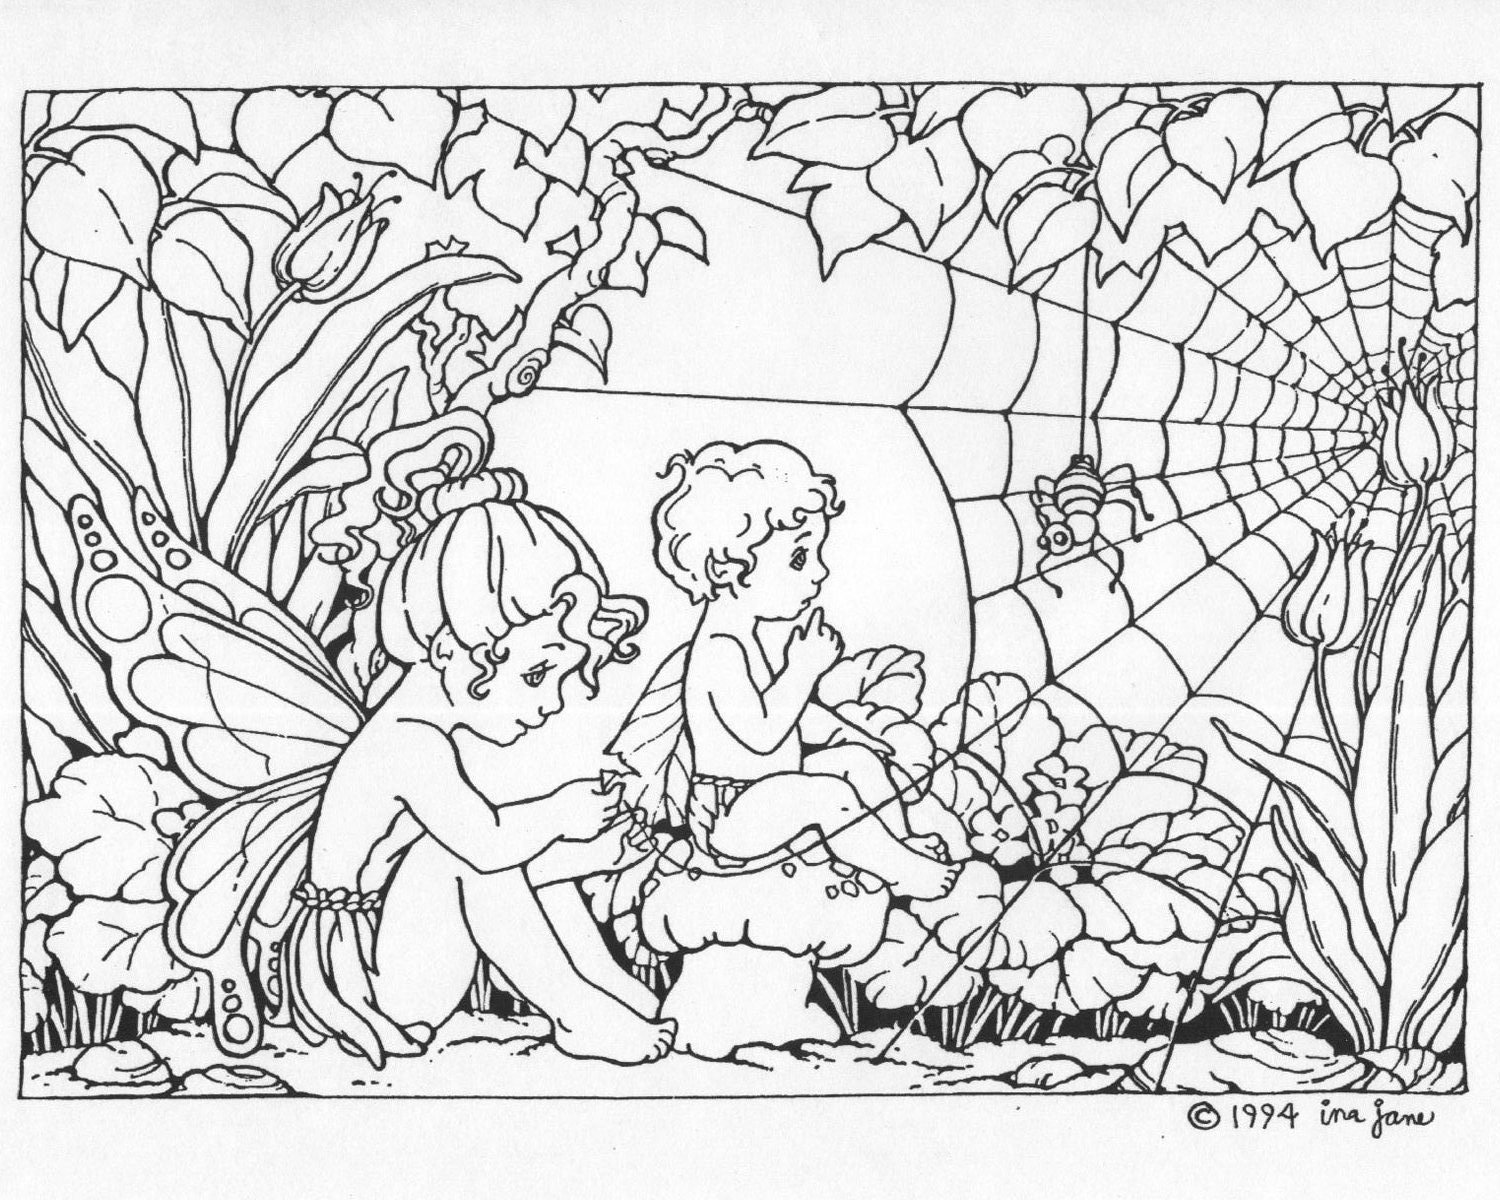 Coloring Printable Images Gallery Category Page 11 - printablee.com